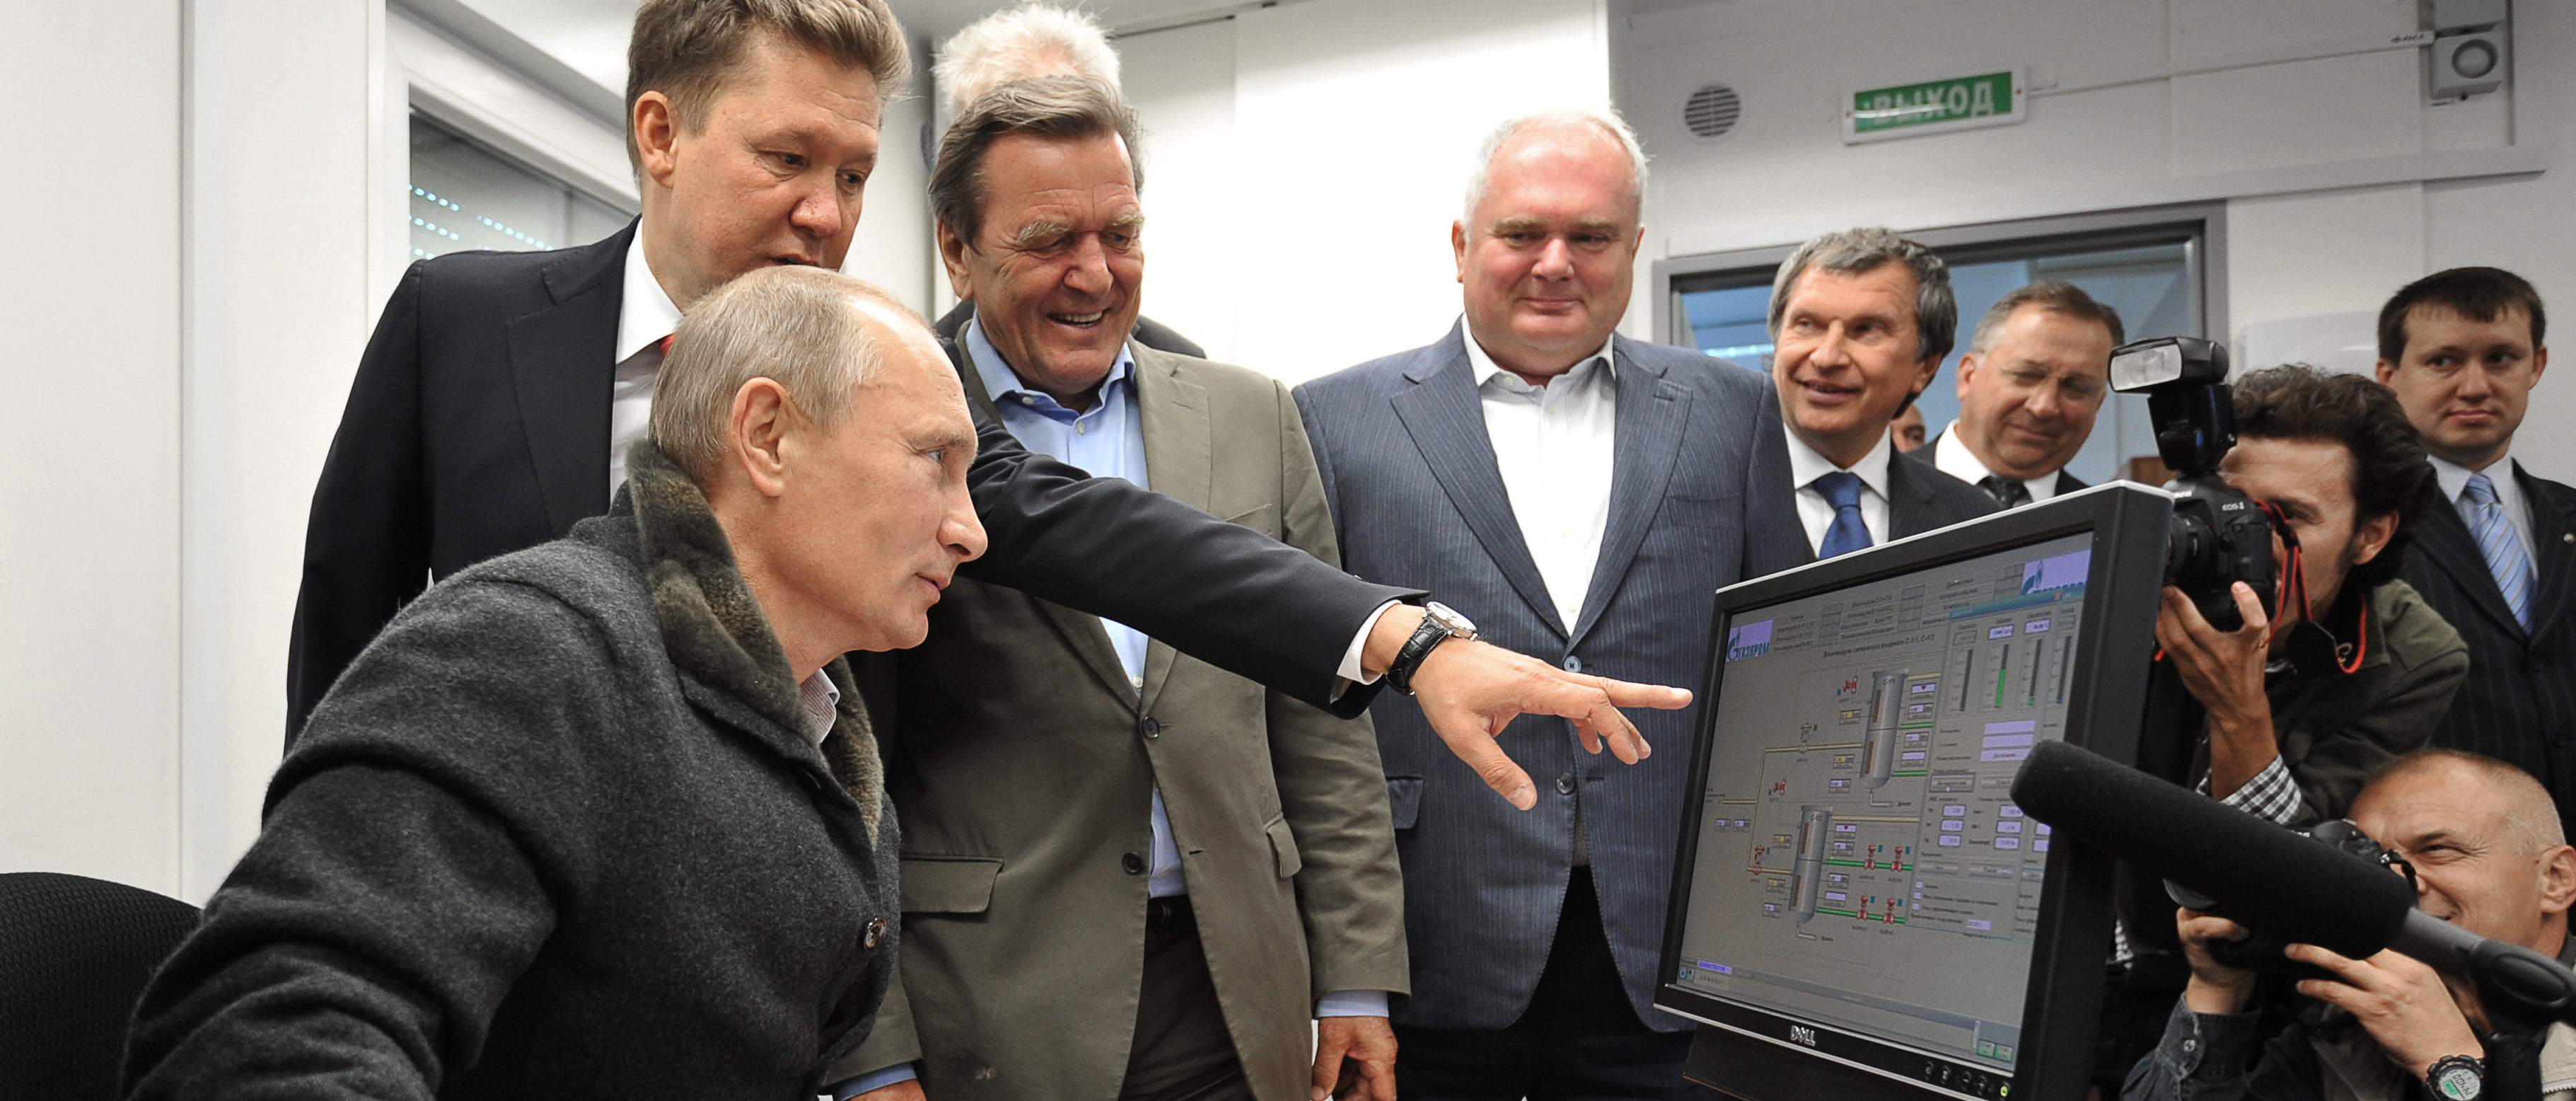 """Russian Prime Minister Vladimir Putin (L),Gazprom Chief Executive Officer Alexei Miller (2nd L) and former German chancellor Gerhard Schroeder (3rd L) look at a screen as they attend the inauguration of the Nord Stream Project information mount at the gas compressor station """"Portovaya"""" outside Vyborg, September 6, 2011. ALEXEY NIKOLSKY/AFP/Getty Images)"""